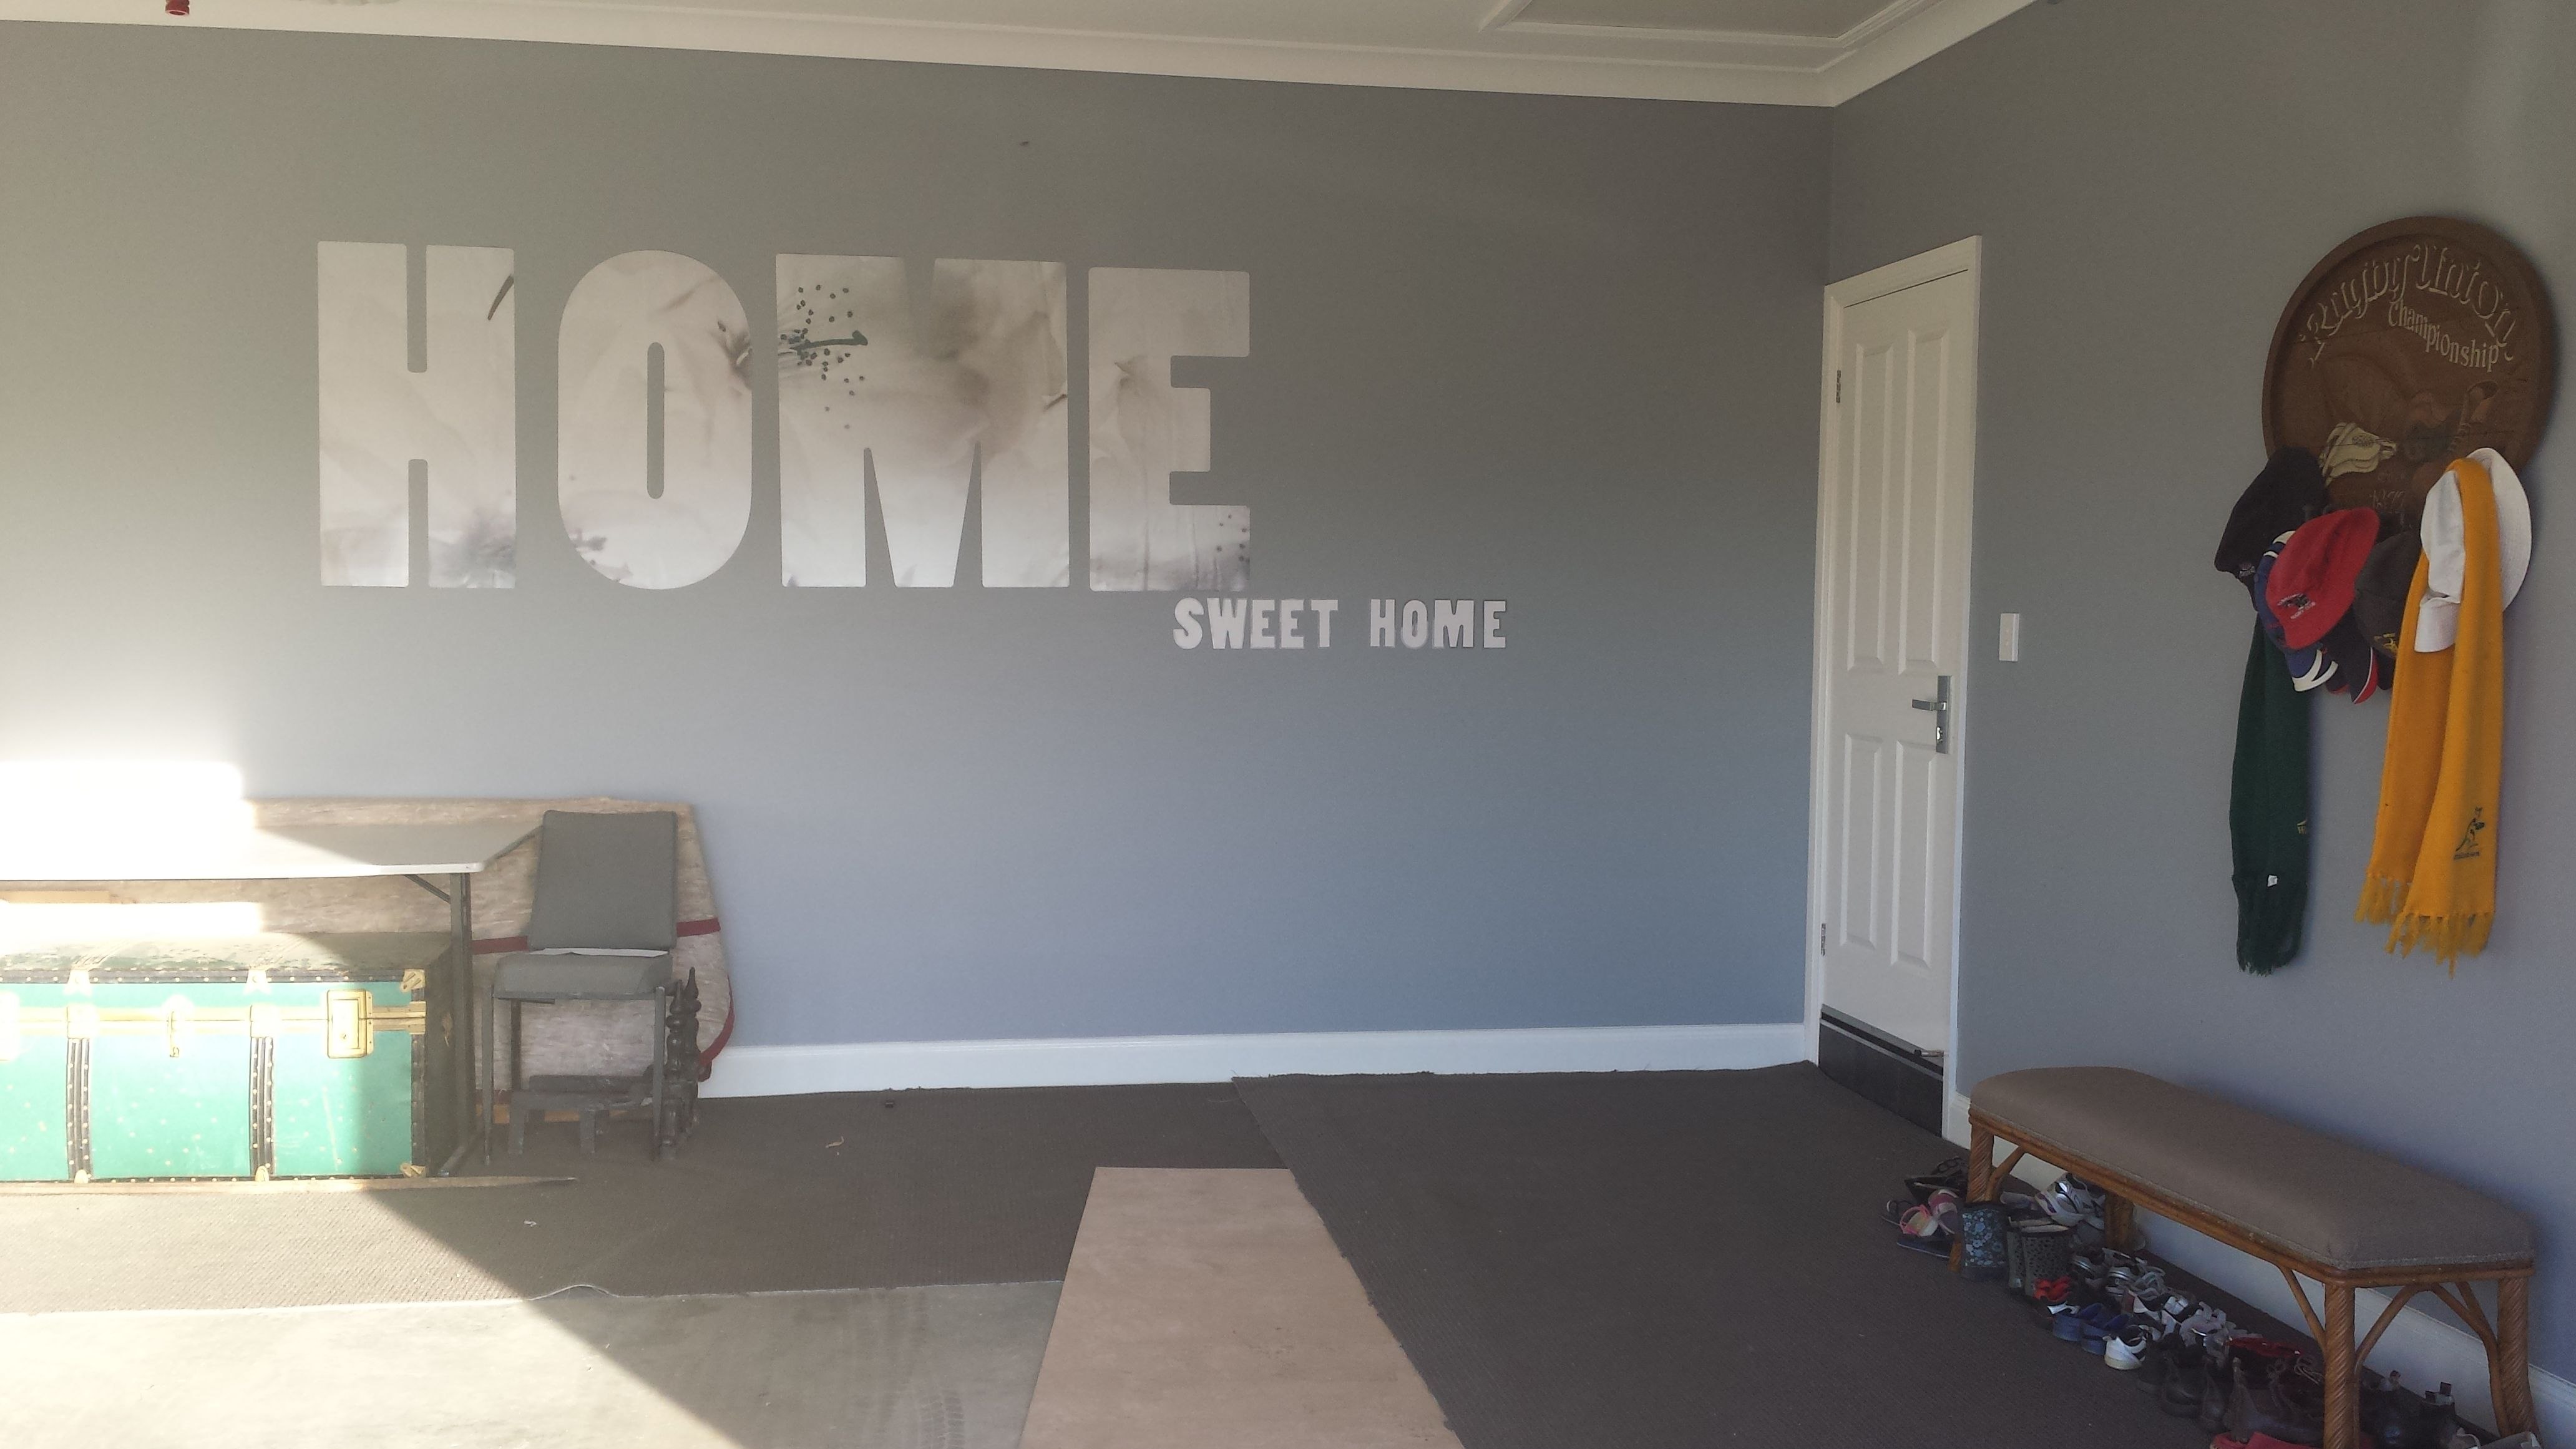 Garage space a great thoroughfare home sweet home sign carpet near